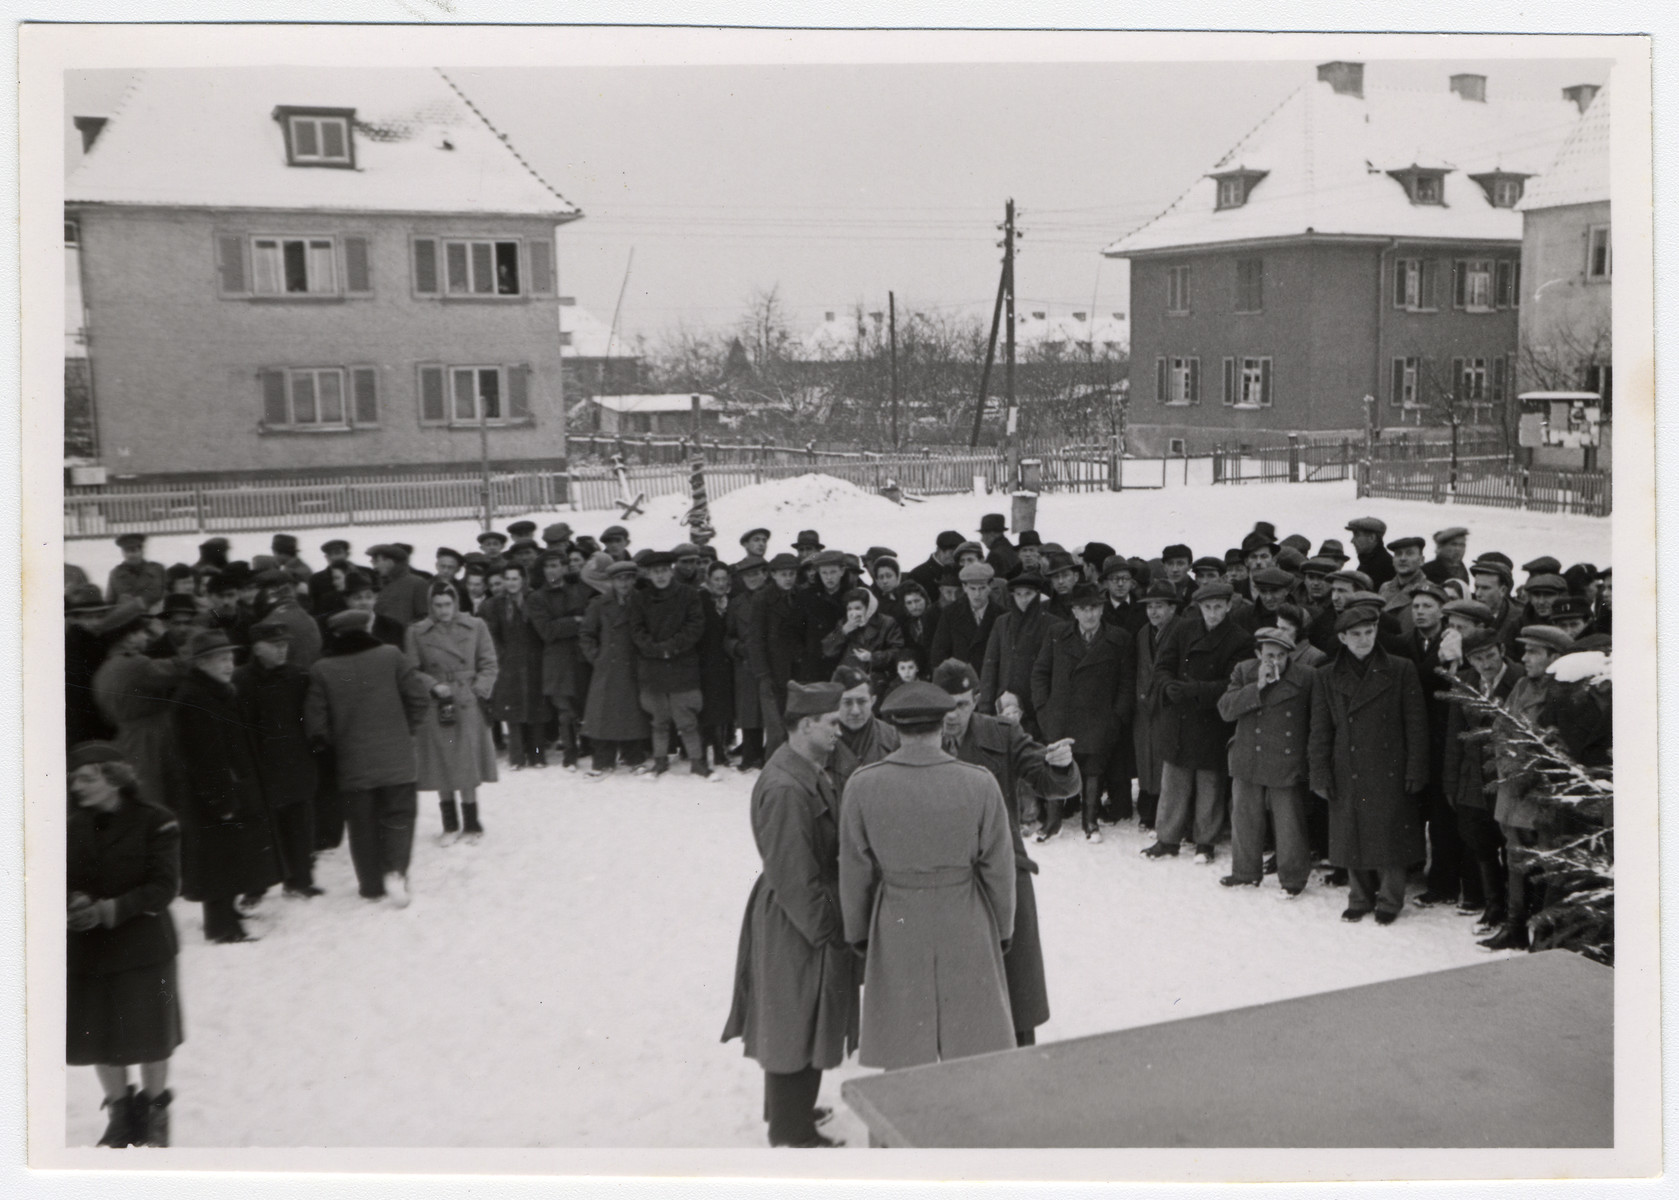 Jewish displaced persons' stand outside in an open snowy courtyard while UNRRA officials hold a discussion in the foreground.